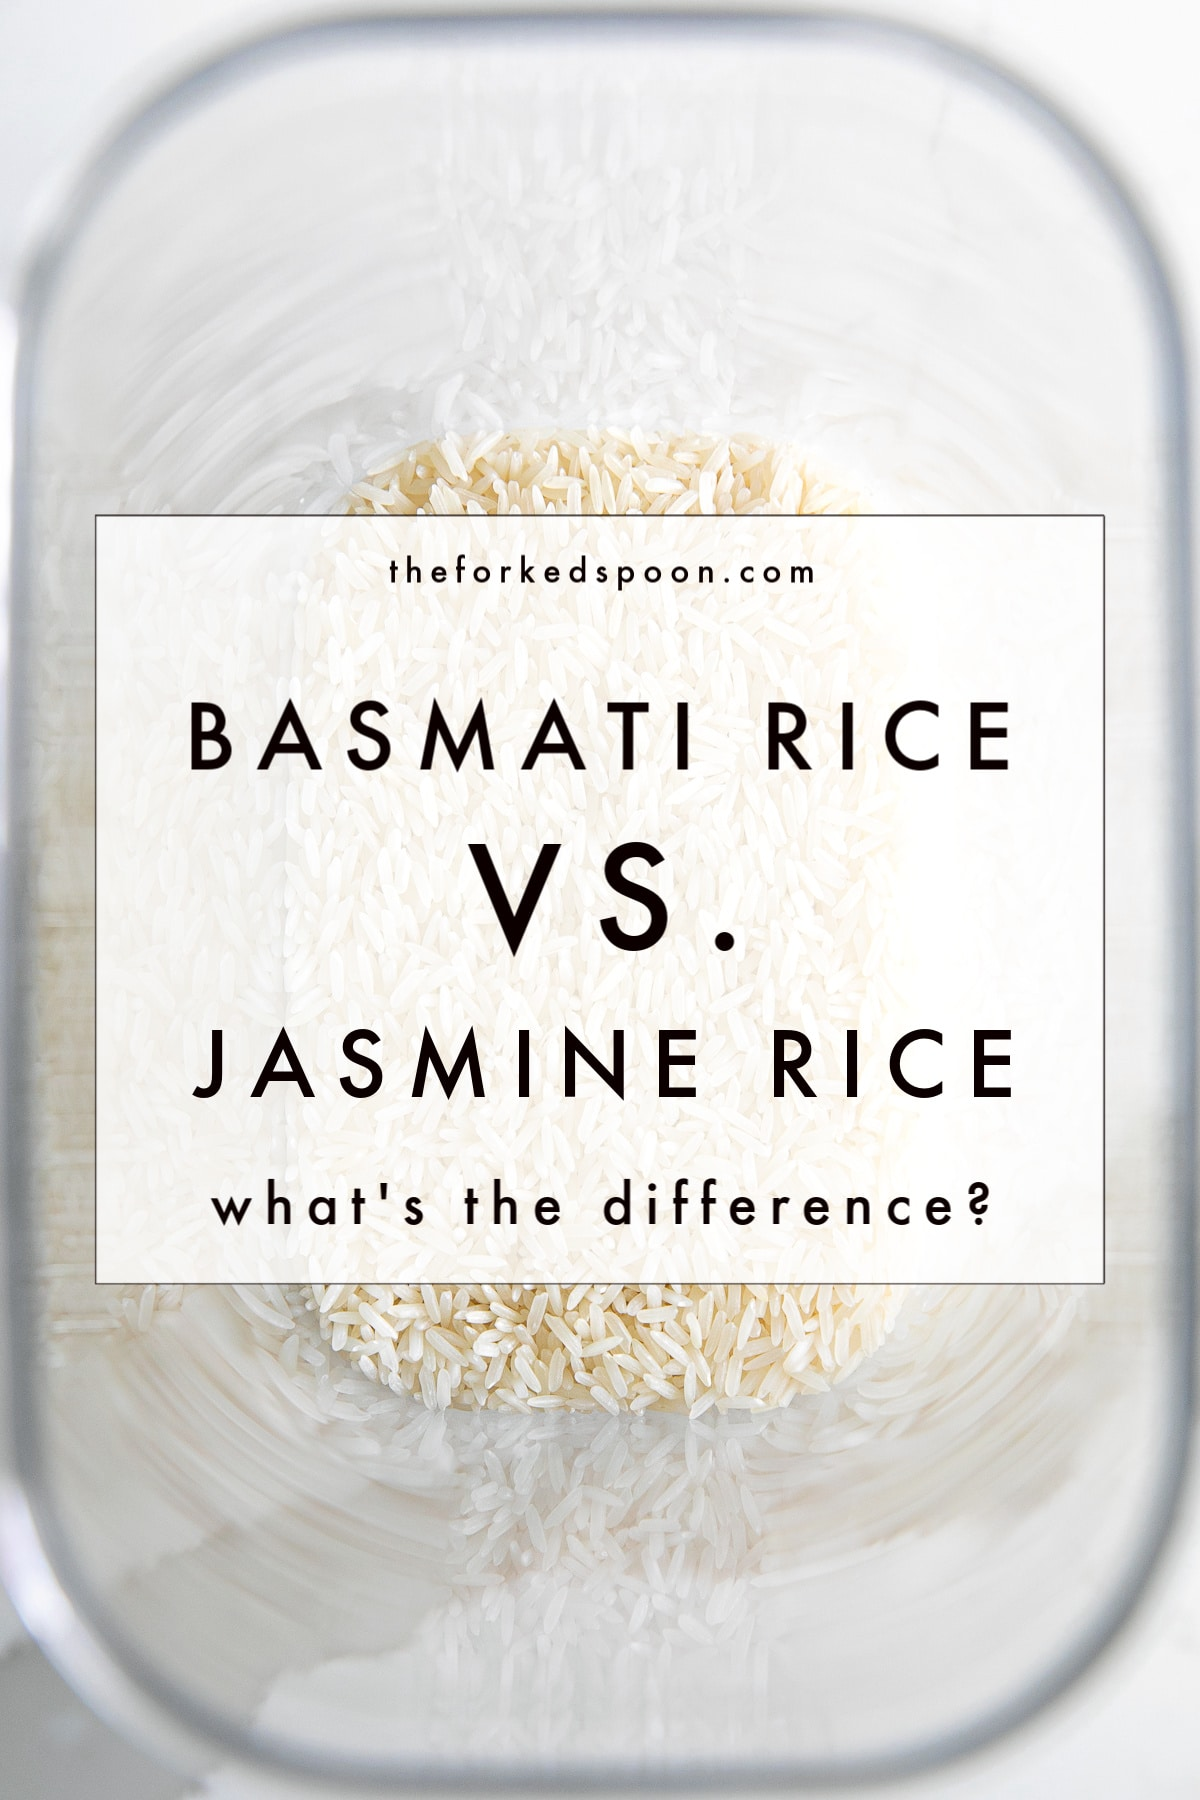 Container filled with jasmine rice with text overlay: Basmati Rice vs. Jasmine Rice: What's the Difference?